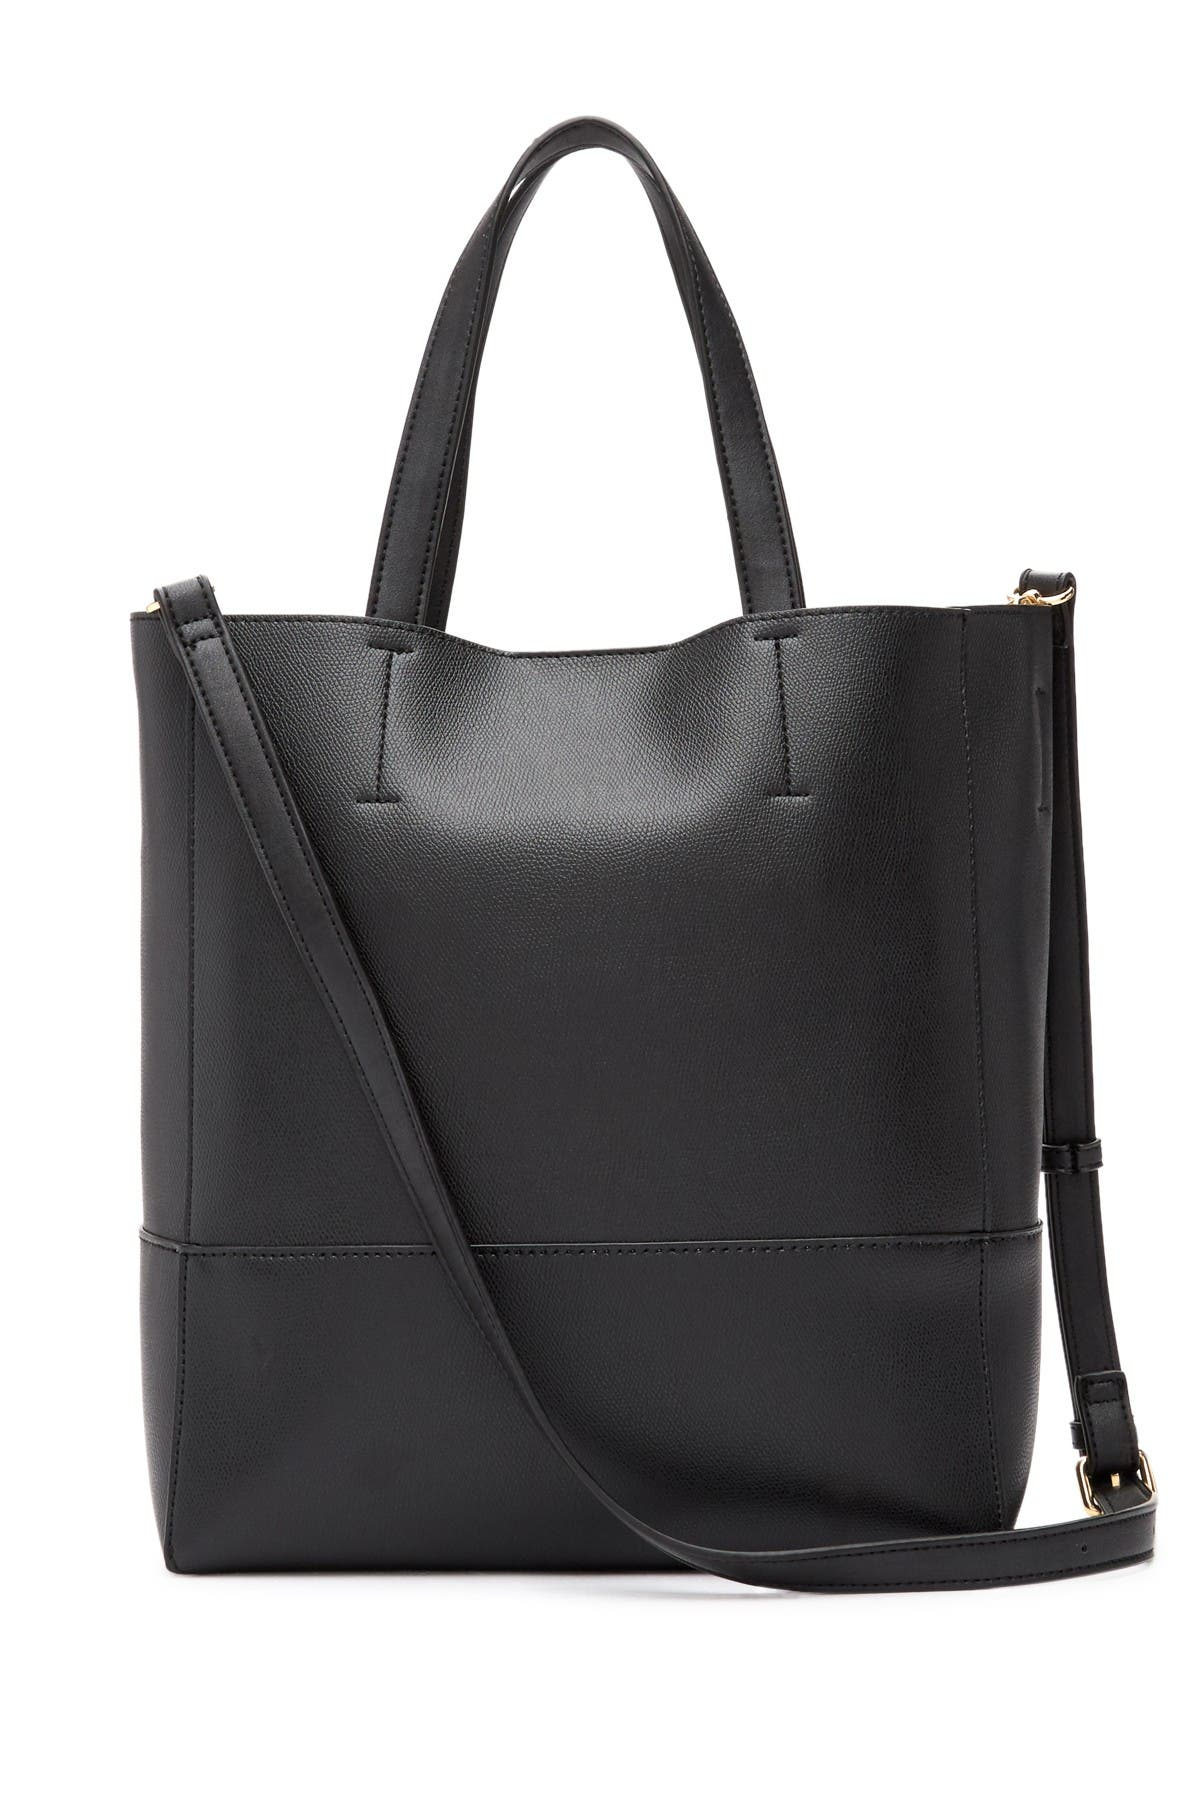 Image of Urban Expressions Marlin Vegan Leather Tote